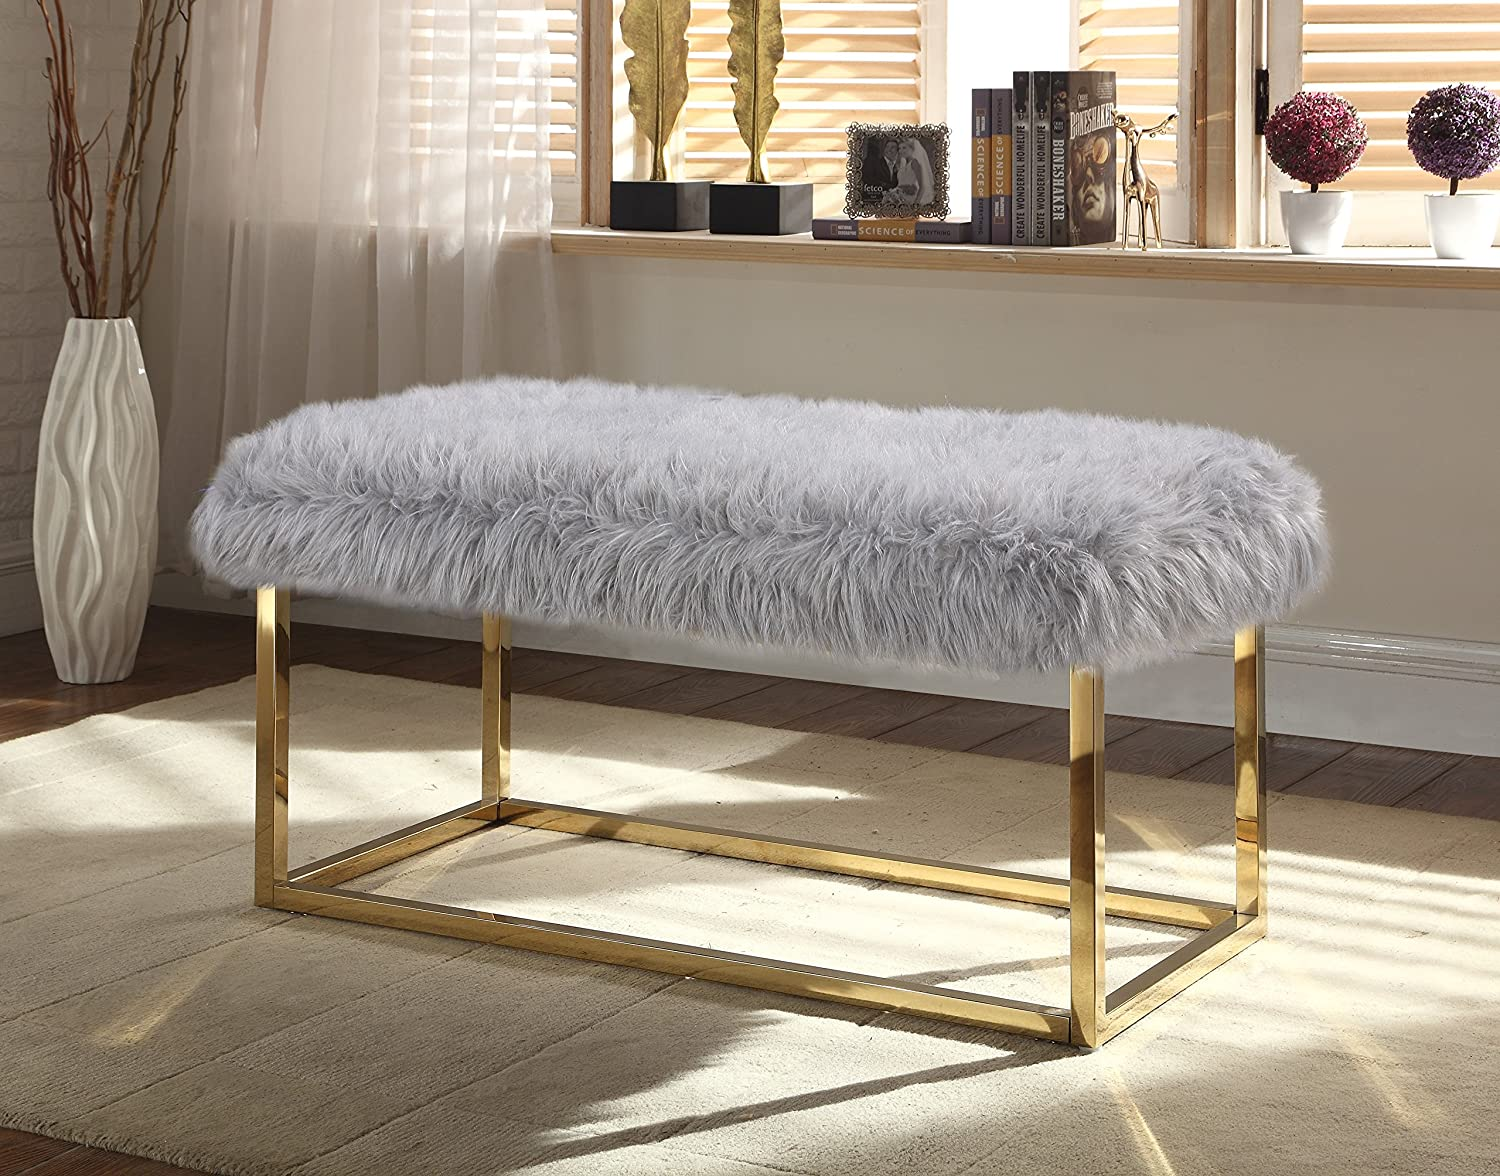 Iconic Home Marilyn Bench Ottoman Faux Fur Brass Finished Stainless Steel Metal Frame, Modern Contemporary, Grey